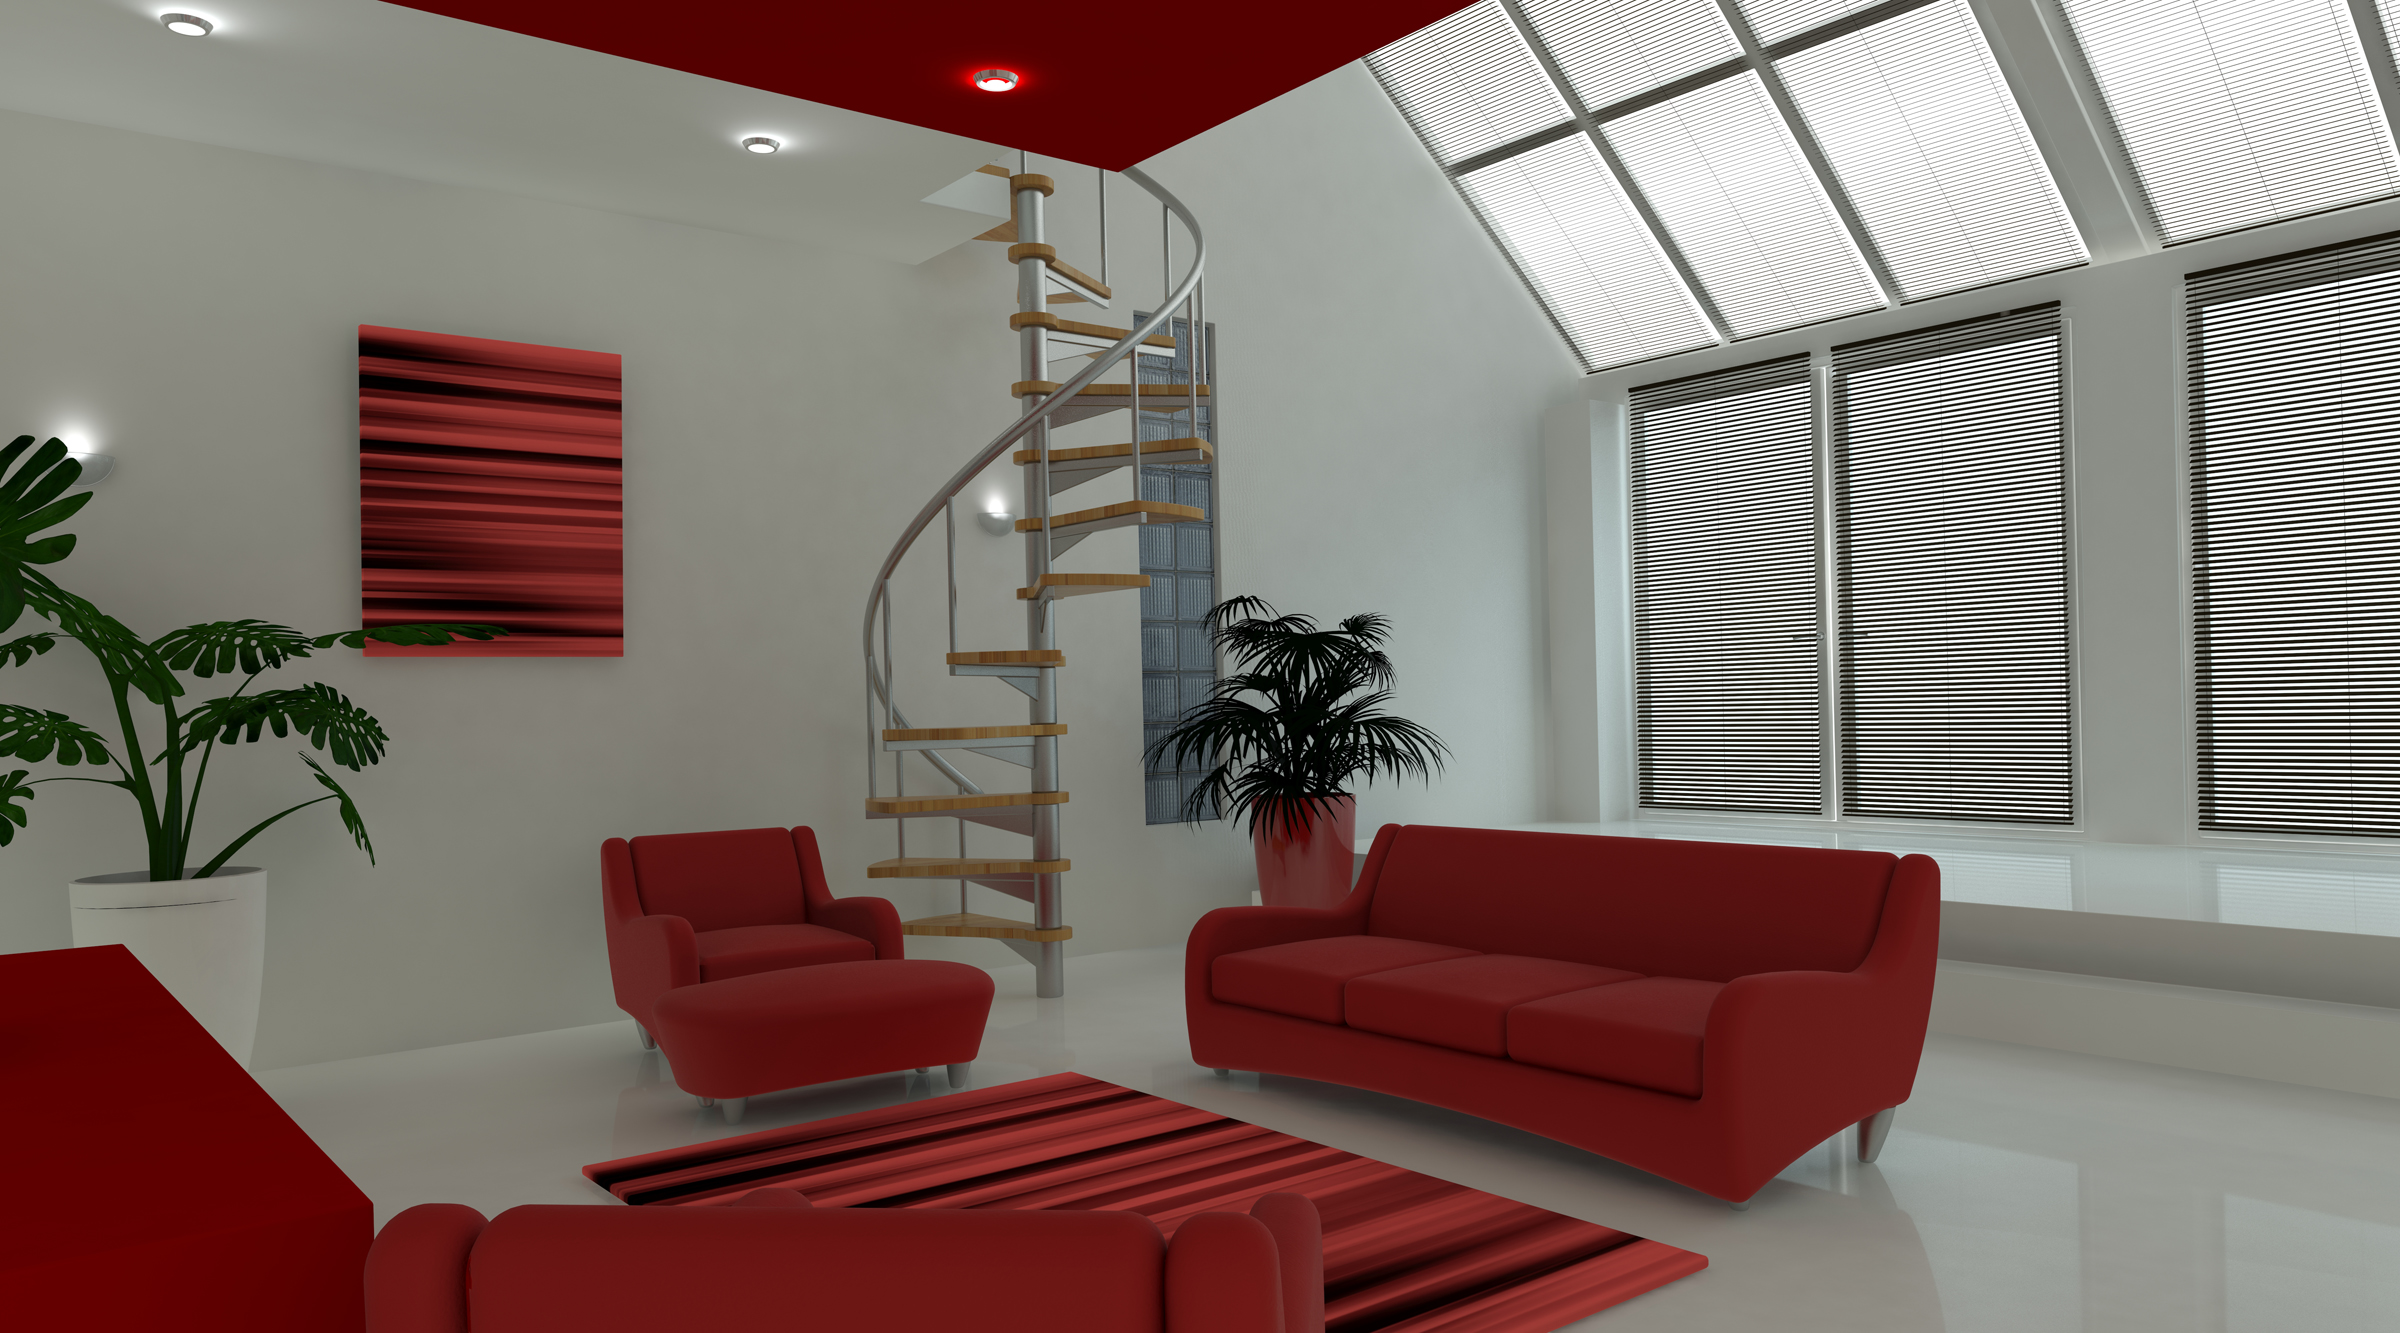 3d design of a room with stairs interior design marbella interior design marbella - Decorate a house online ...